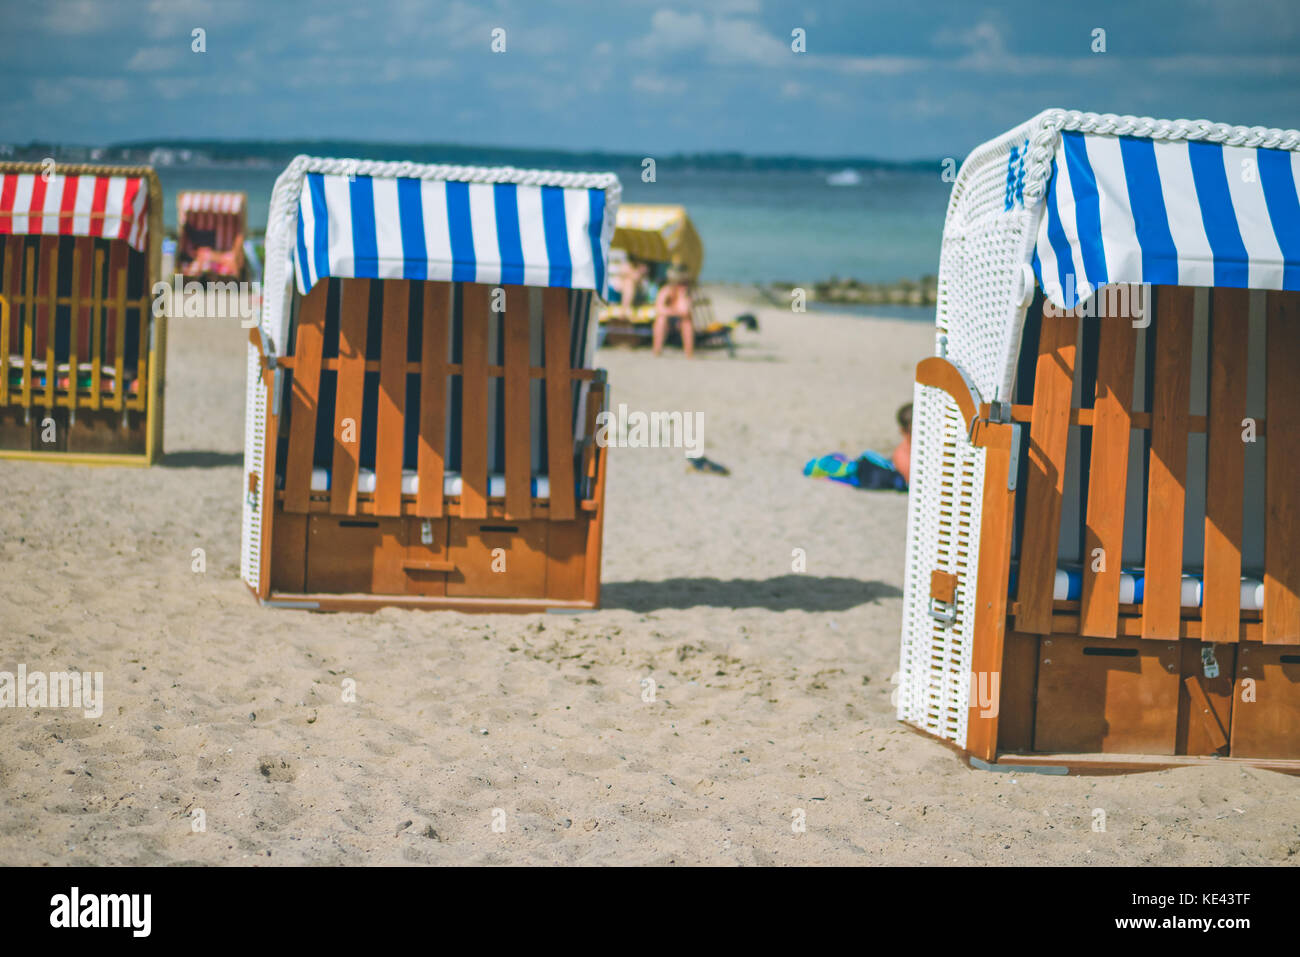 Colorfuled striped roofed chairs on sandy beach in Travemunde. A blurred couple sitting on beach in background. - Stock Image